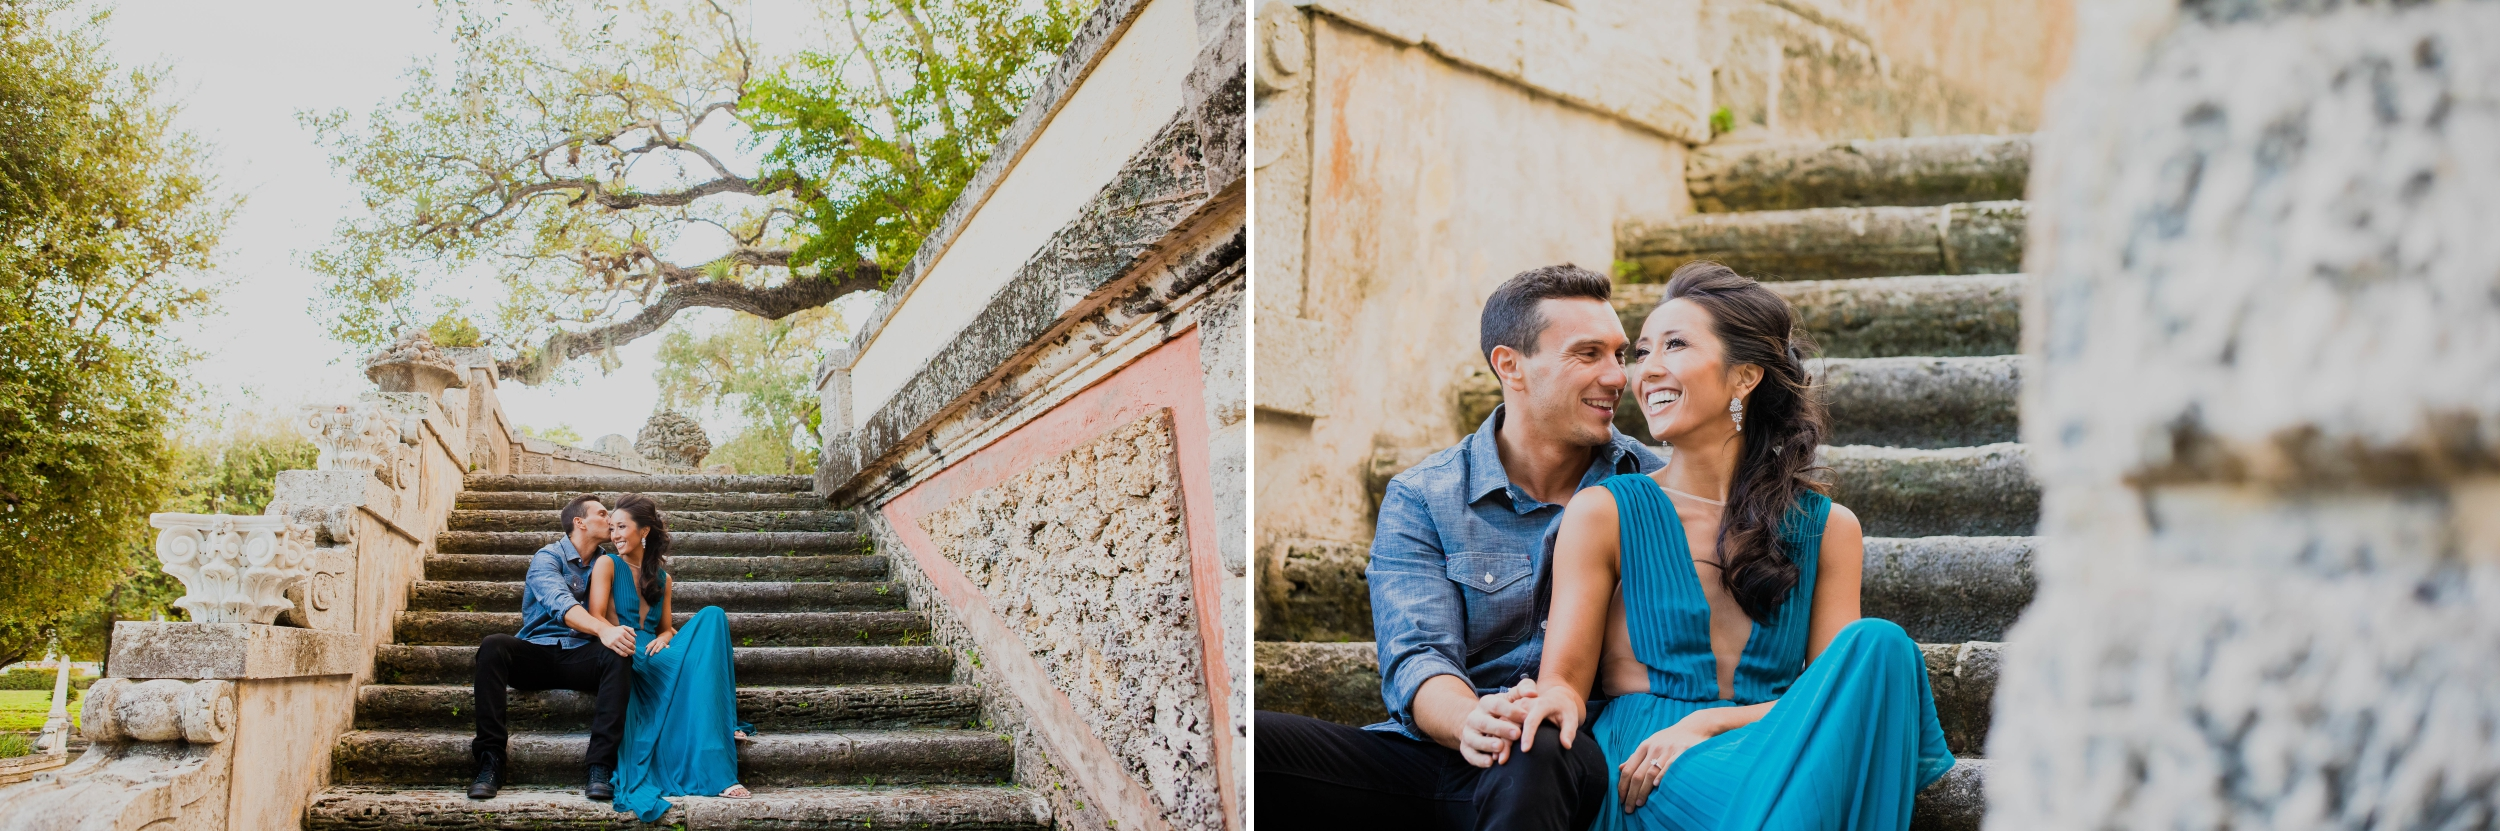 Vizcaya Museum and Gardens Engagement Session Santy Martinez Photography 1.jpg